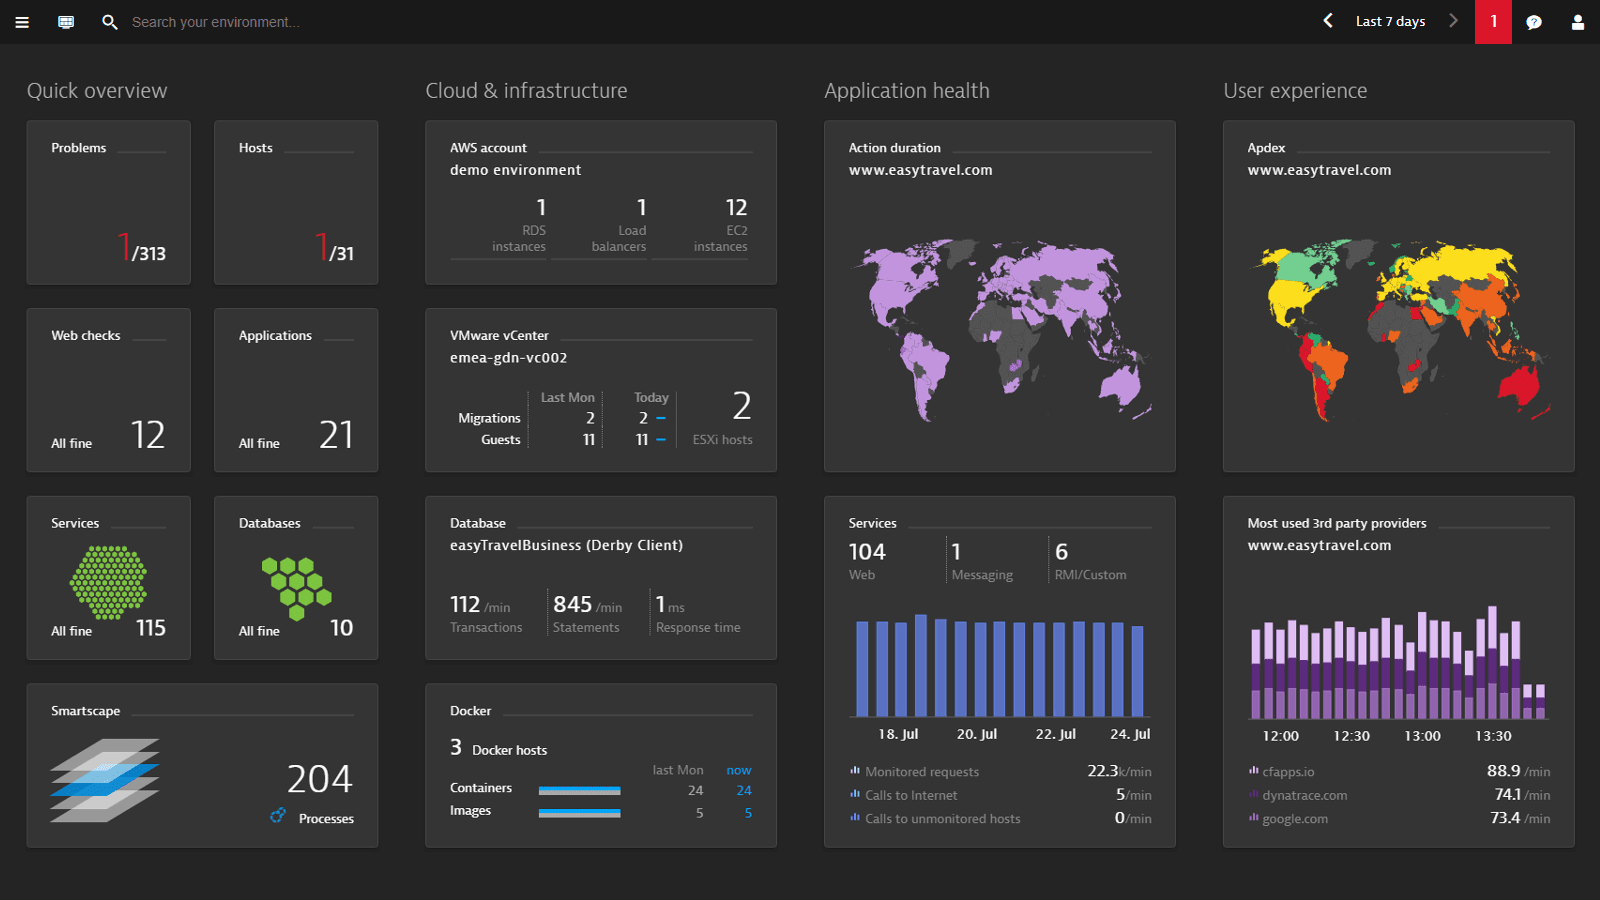 Dynatrace monitoring integrations for real-time incident management screenshot